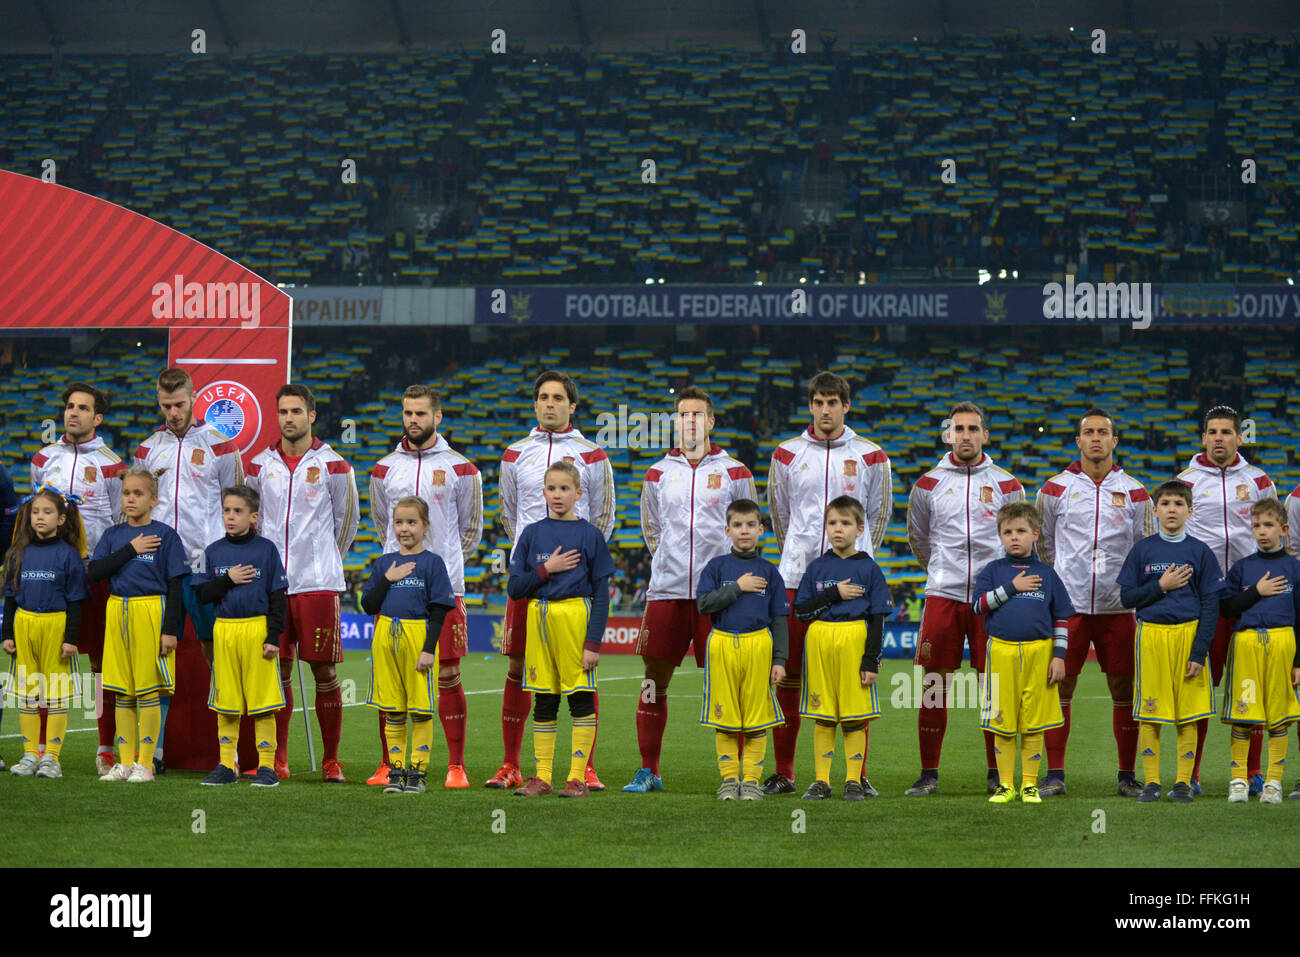 Hilo de la selección de España Spain-football-players-during-the-euro-2016-qualifying-soccer-match-FFKG1H